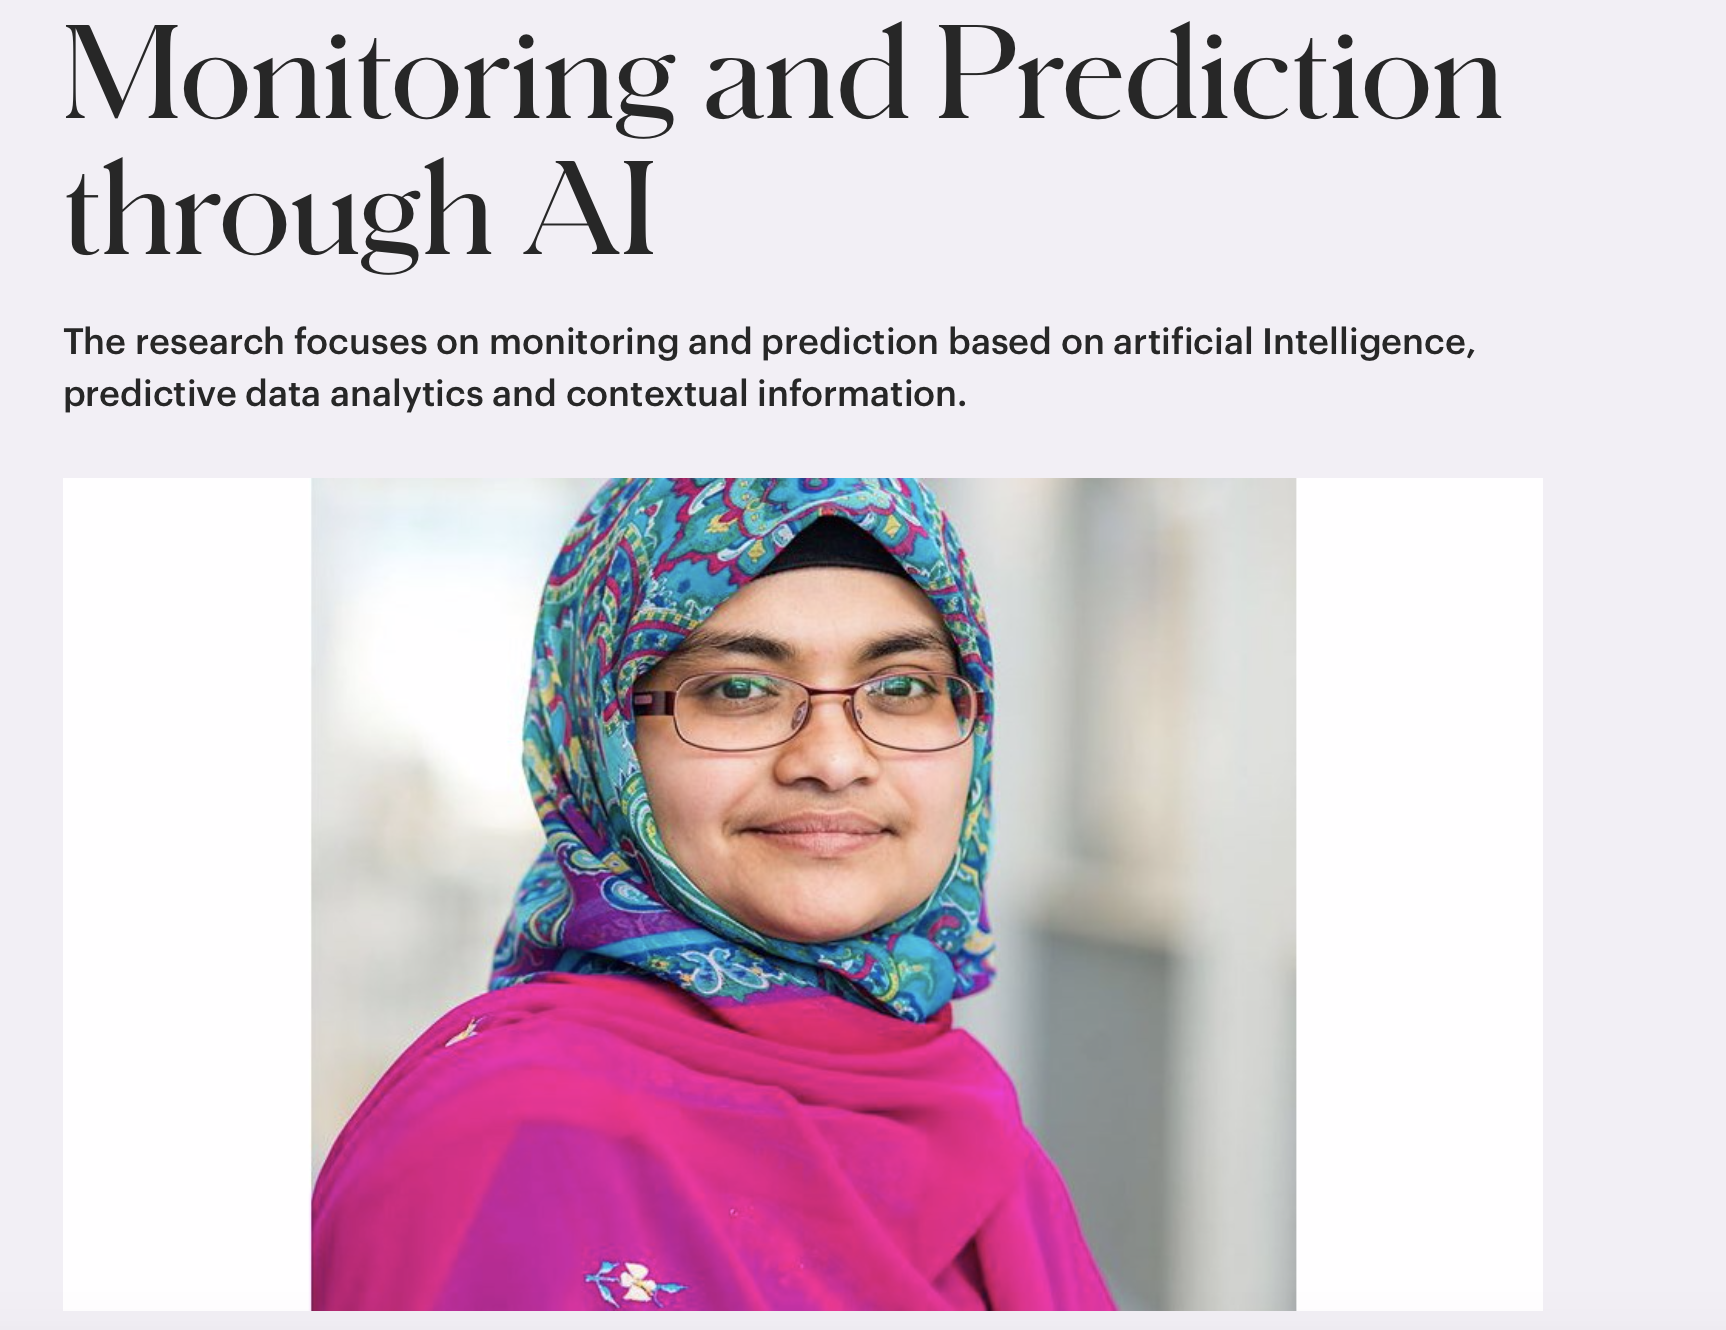 Bild med text: Monitoring and prediction through AI. The research focuses on monitoring and prediction based on AI, predicitive data analytics and contextual information. Porträttbild av Shanina Begum